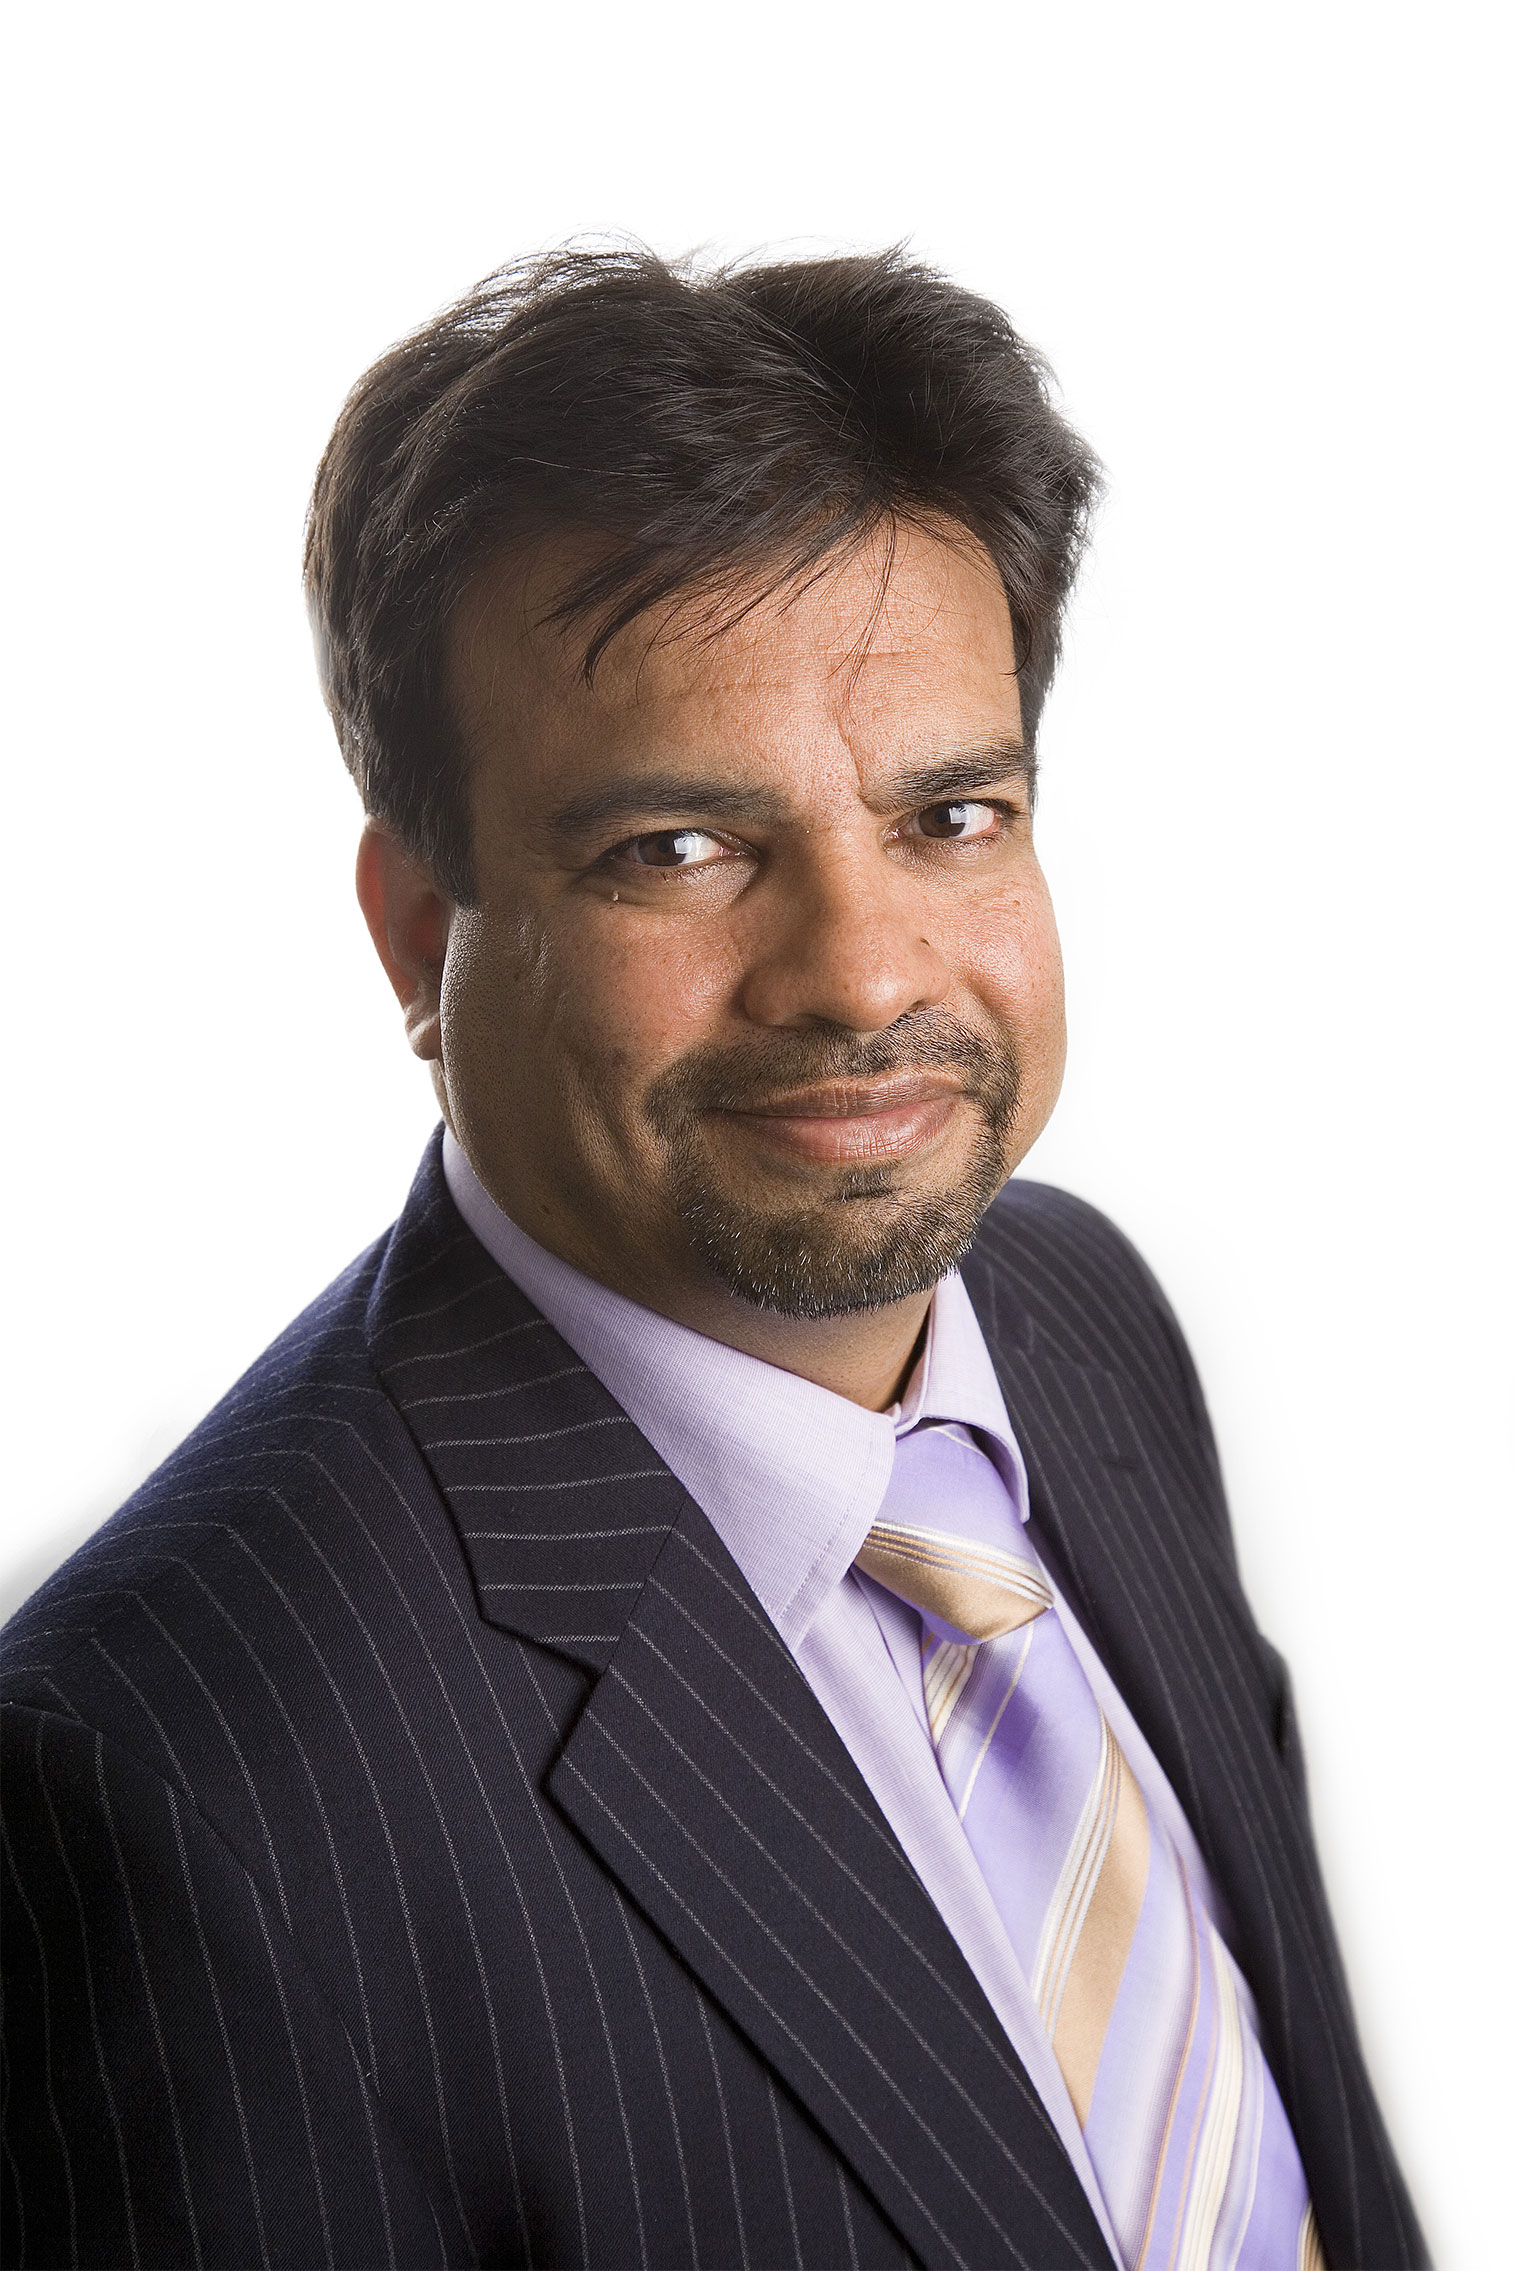 Bijal Shah, Insolvency Partner at Edge Recovery